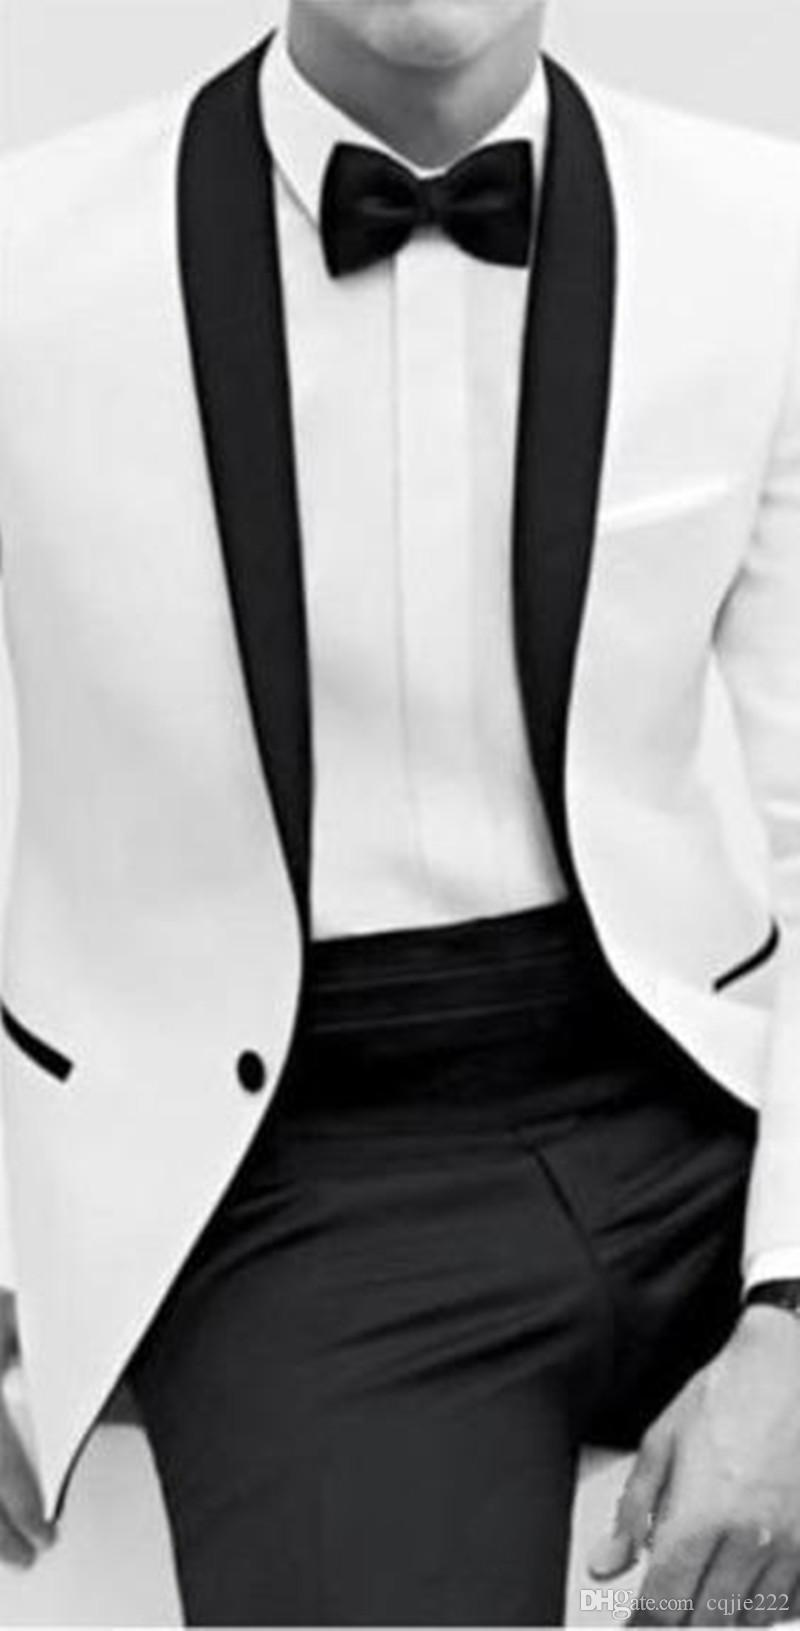 2018 New Classic Black and White Bestmen Smoking dello sposo Abiti formali Business Men Wear Jacket + Pants + Tie Spedizione gratuita Cheap 2017